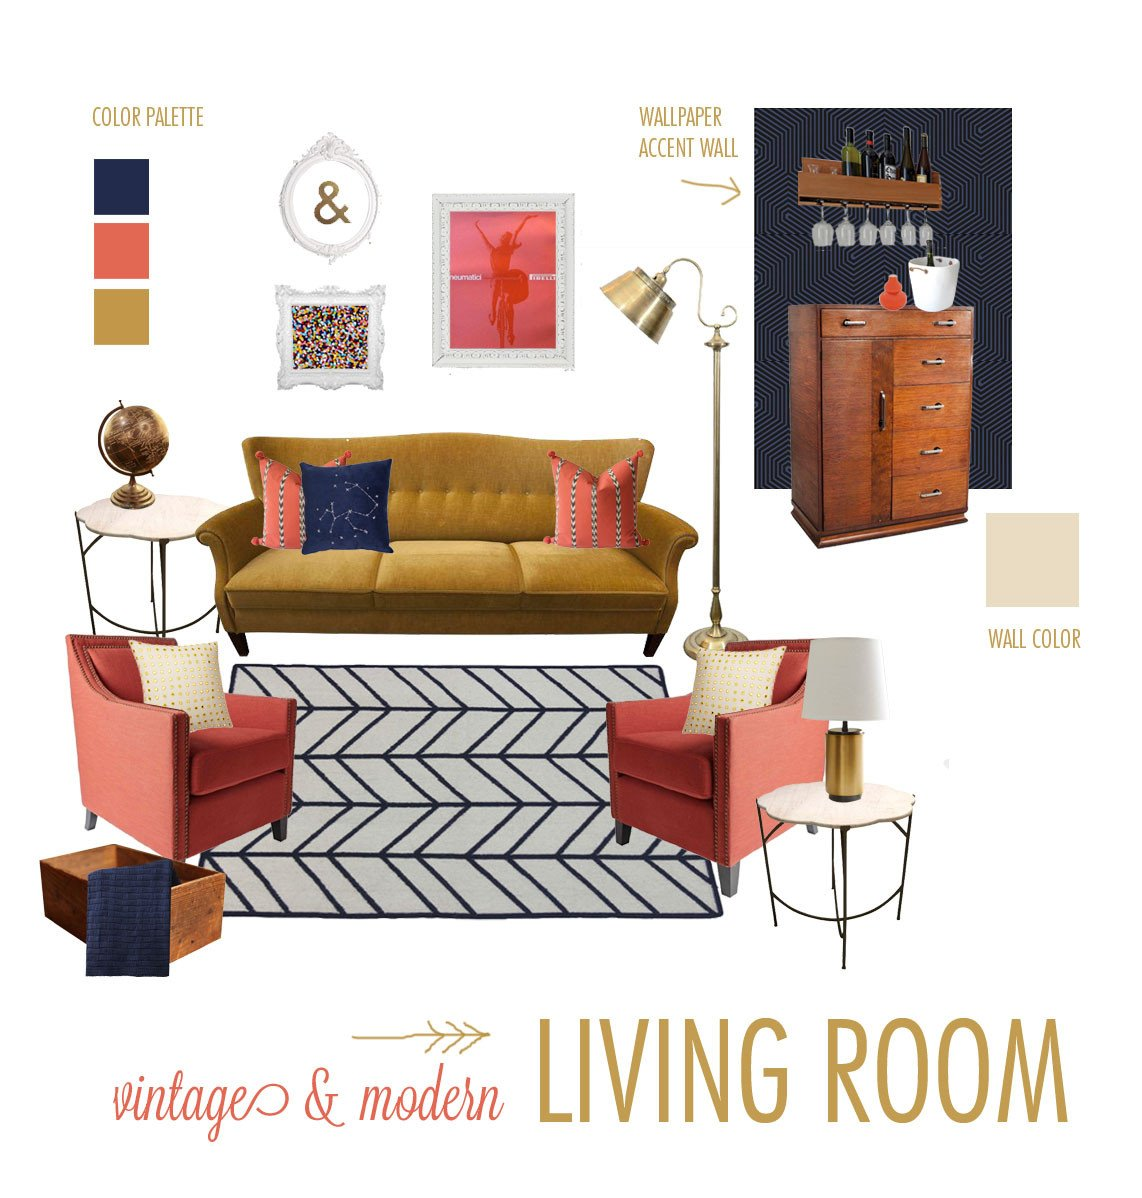 Vintage Contemporary Living Room Elegant Style Board Challenge Vintage and Modern Living Room